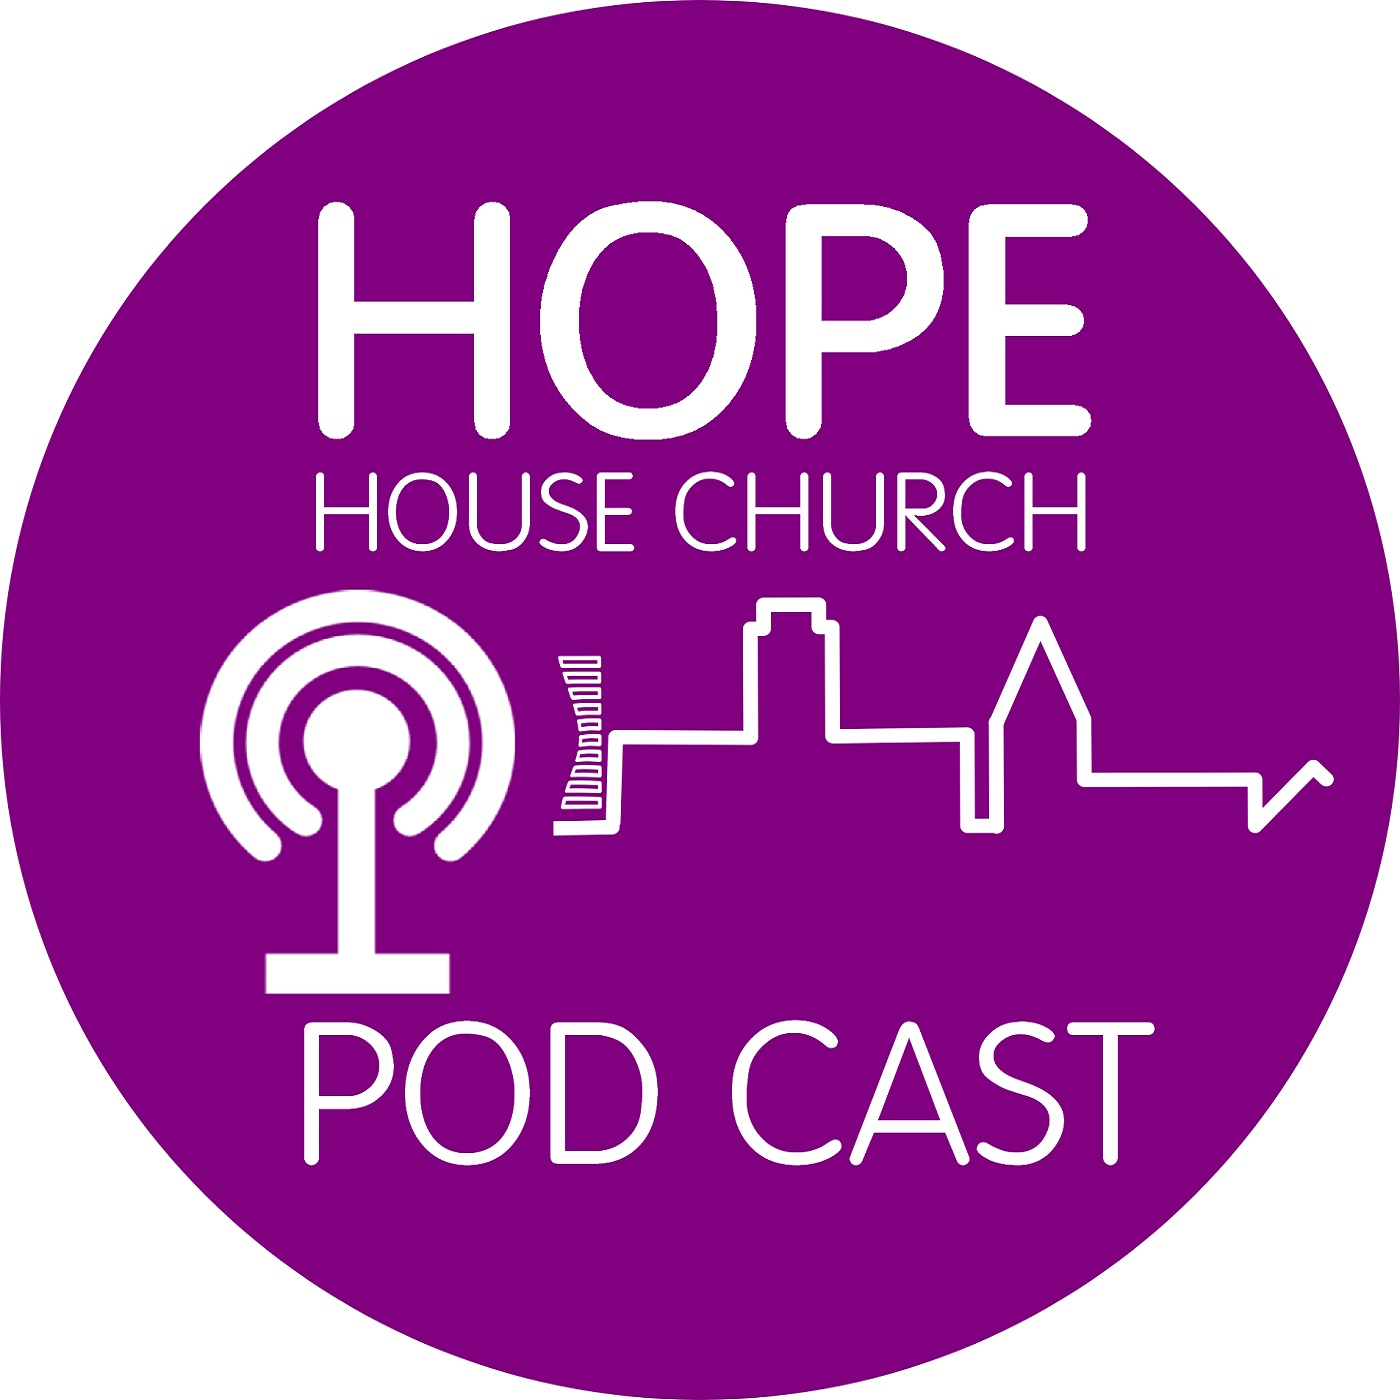 Podcast from Hope House Church, Barnsley